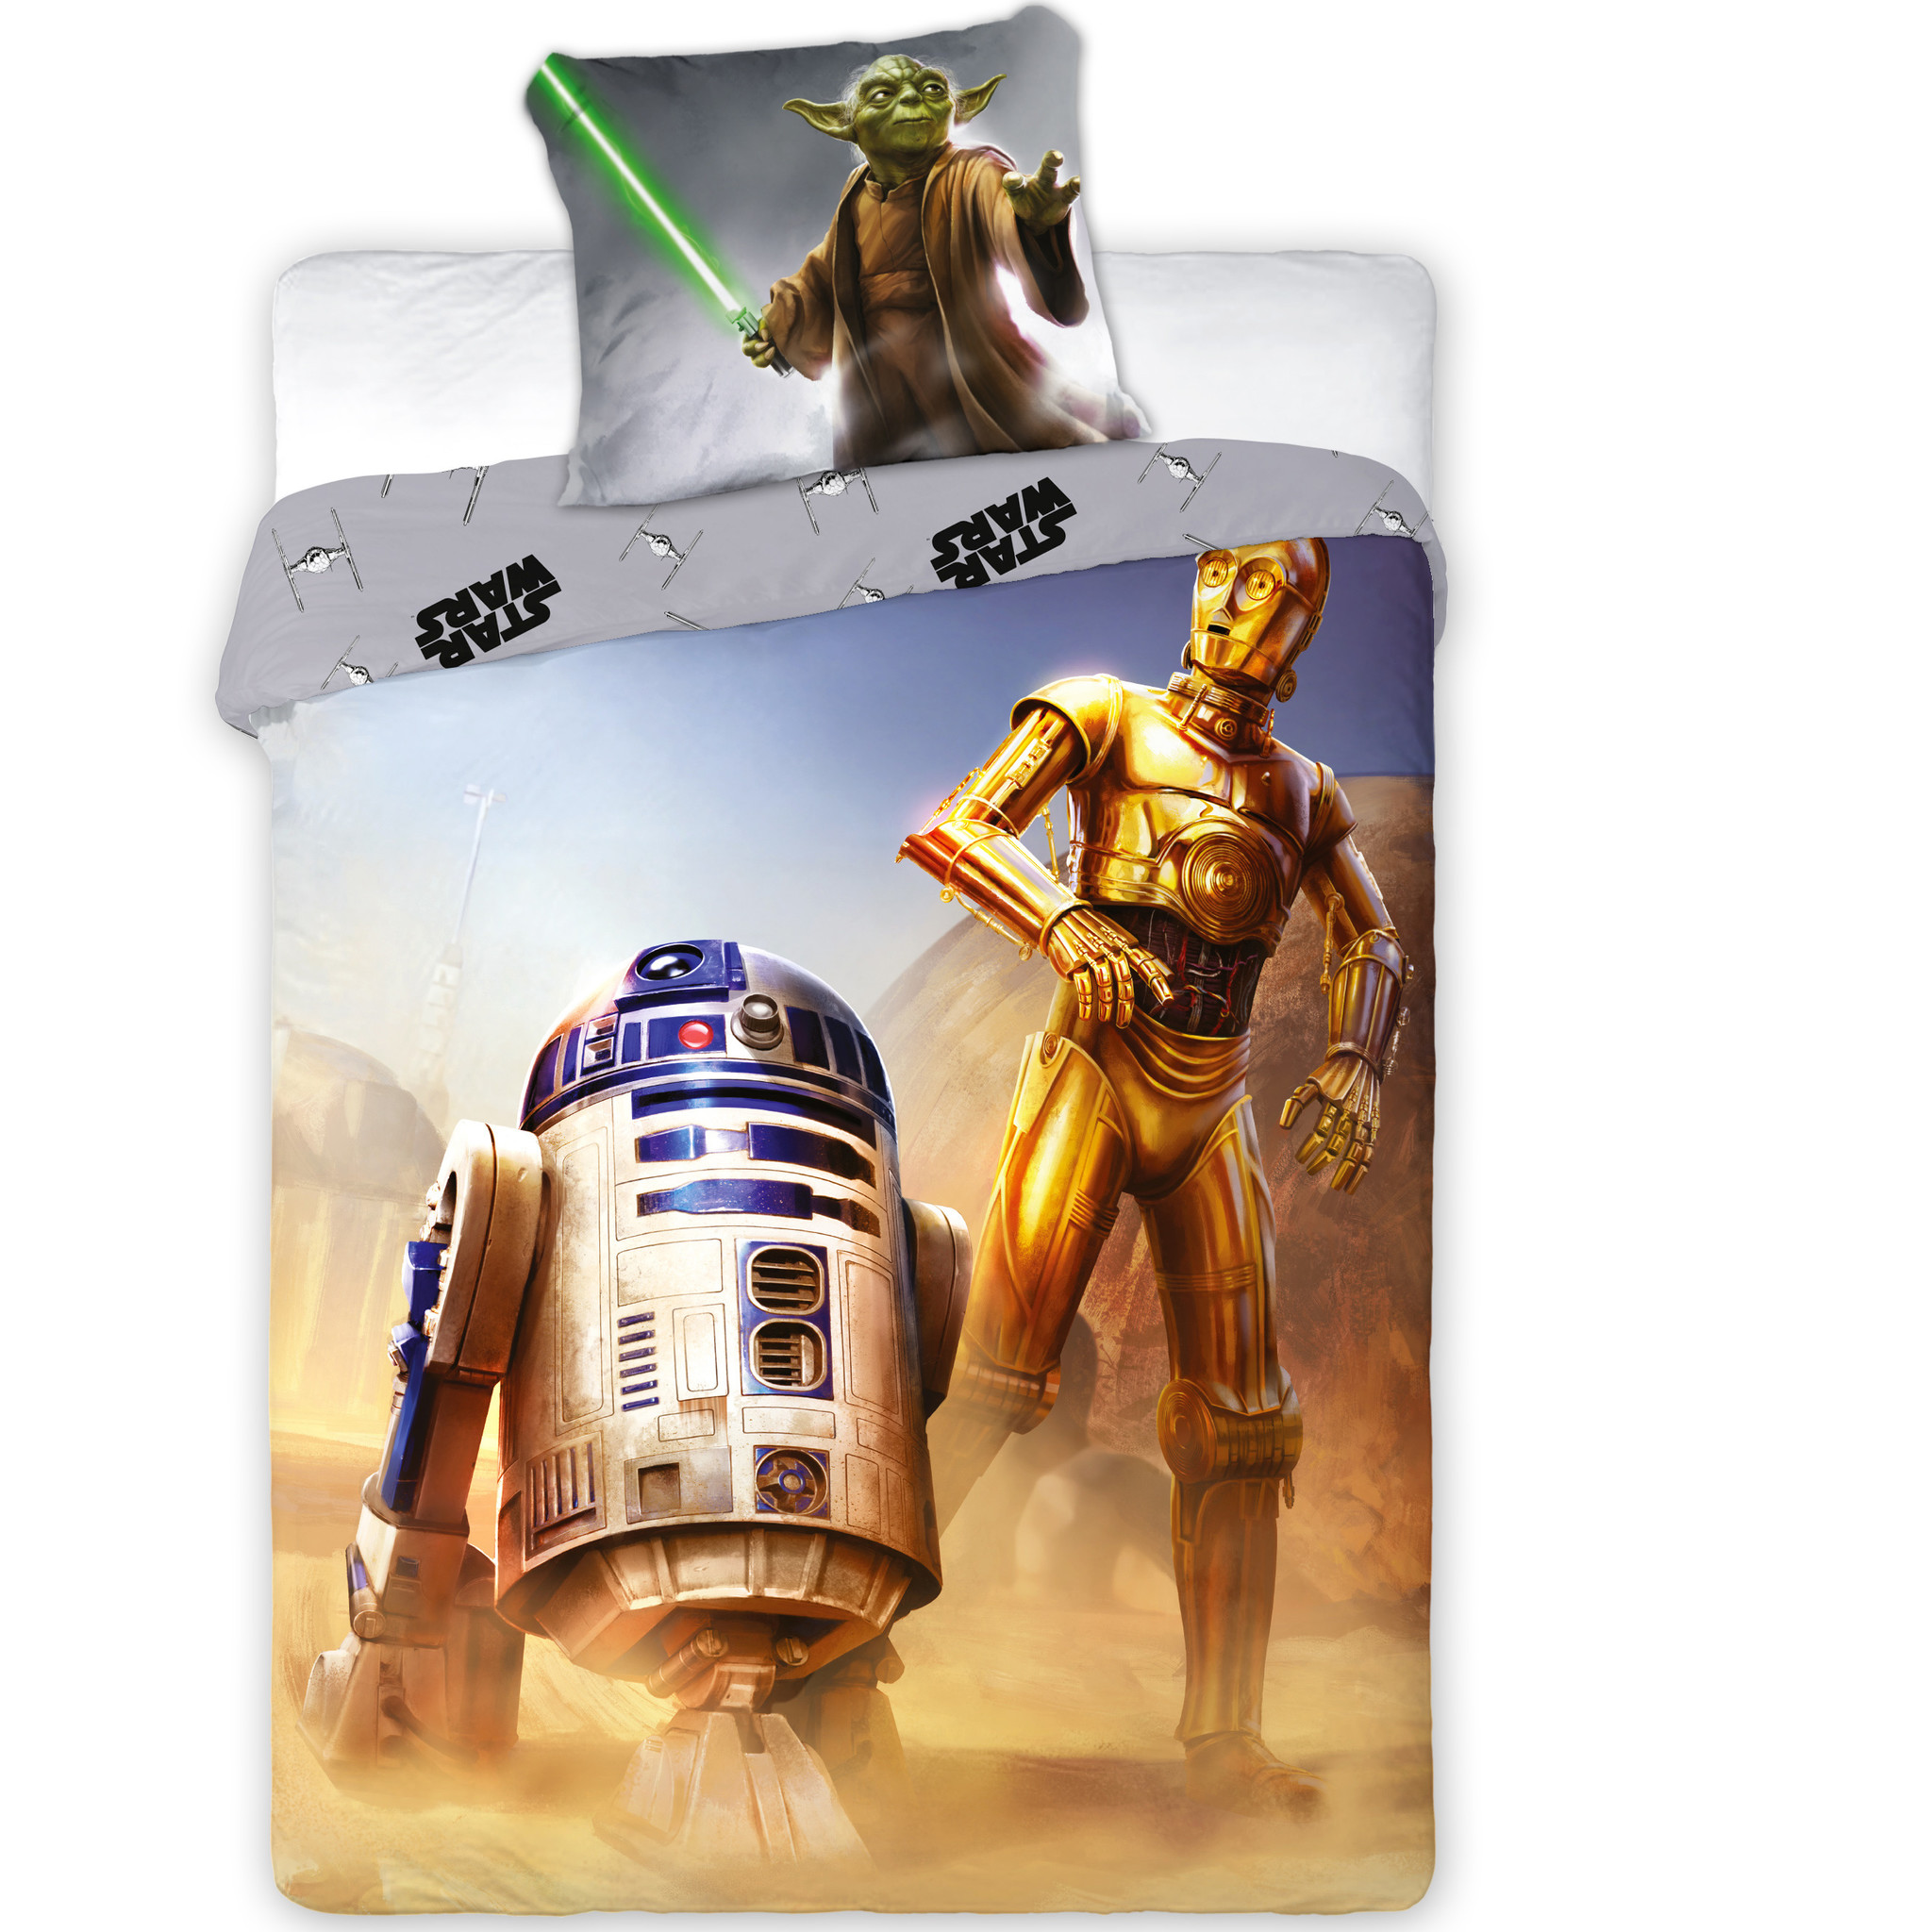 Housse de couette Star Wars R2-D2 - Unique - 140 x 200 + 70x90cm. 100% coton. - SimbaShop.nl